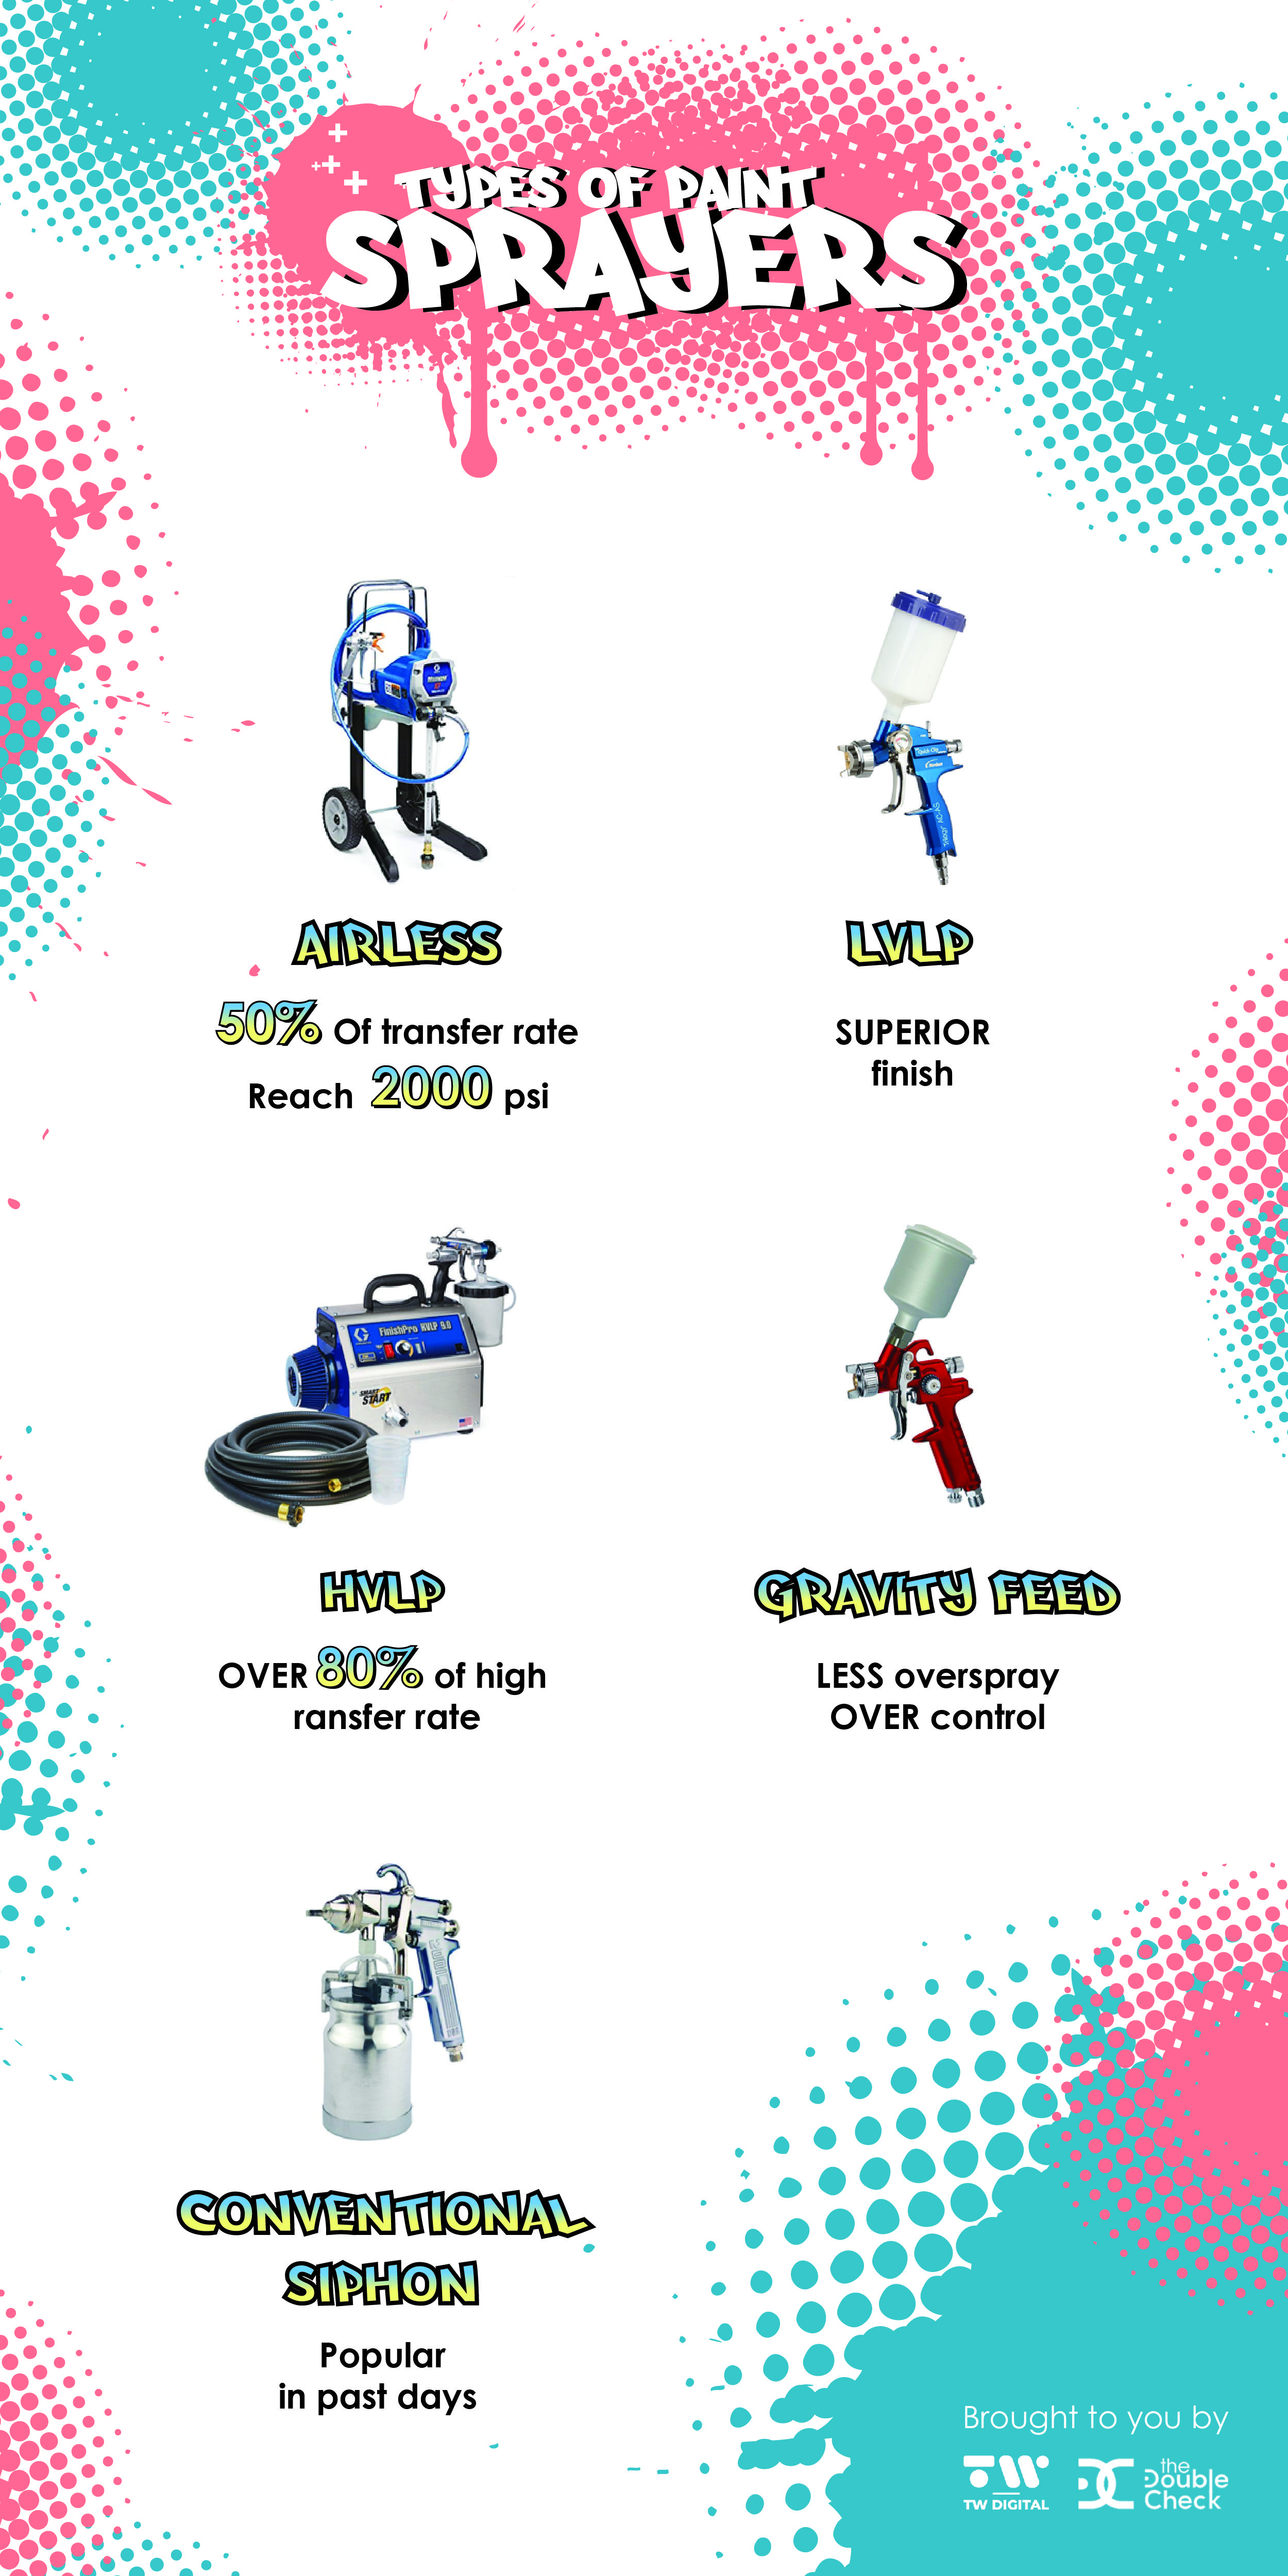 [Infographic] How Many Types Of Paint Sprayers You Could Use?